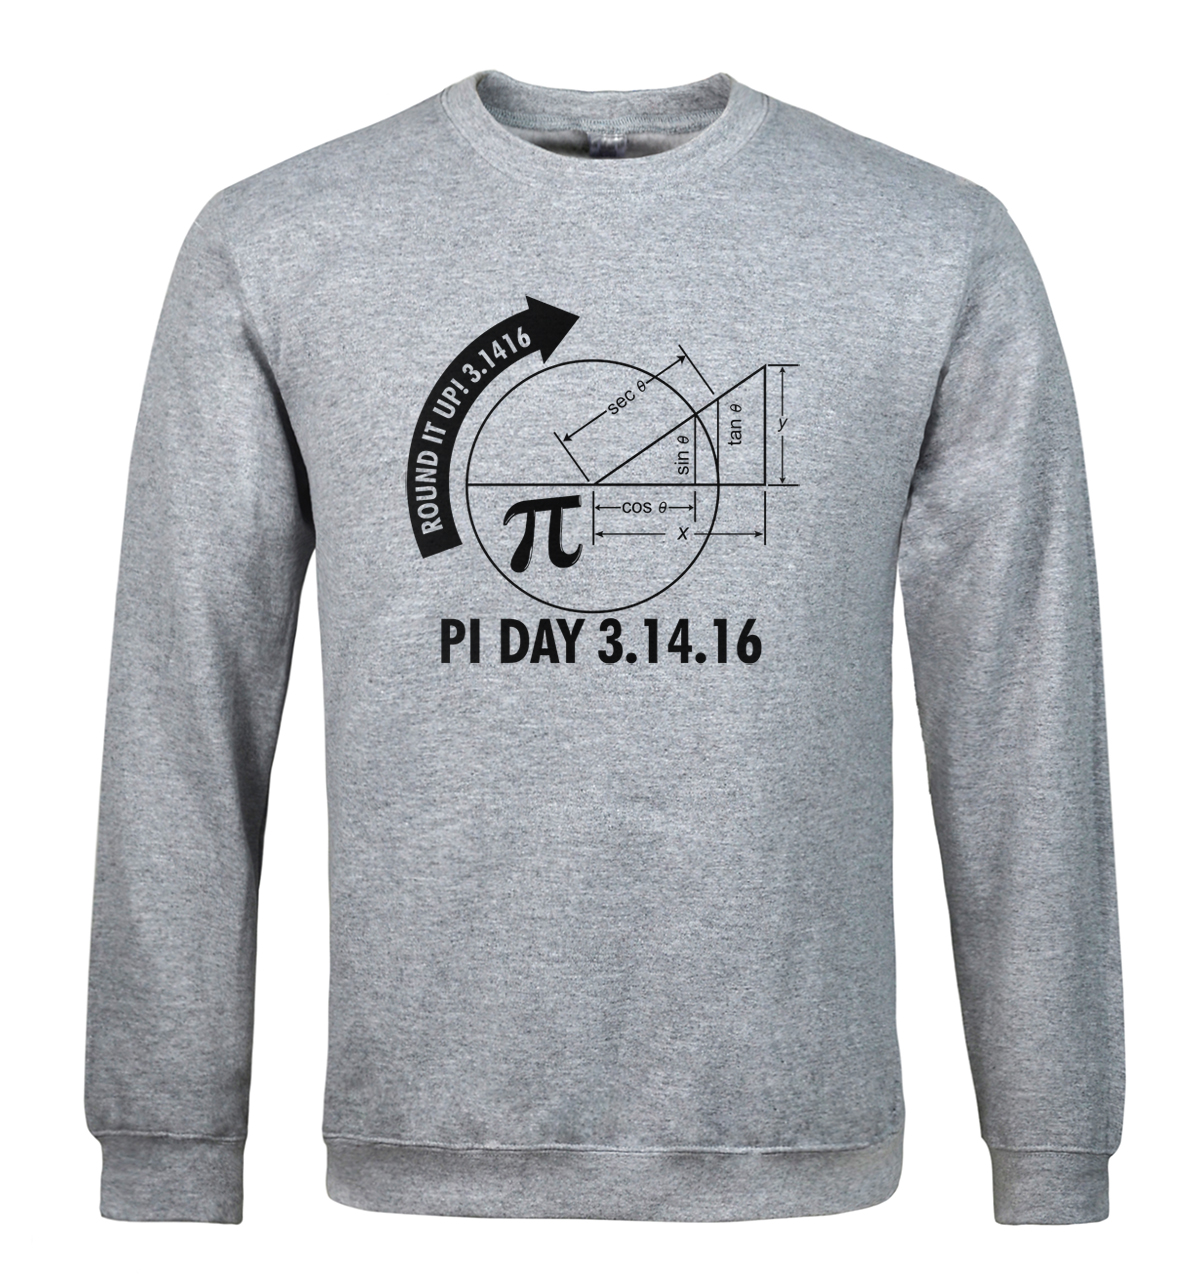 Sweatshirt 2018 spring winter hoody Pi Day 3.1416 Round It Up Math Graph STEM pattern mens sportswear hoodies men moletom k-pop